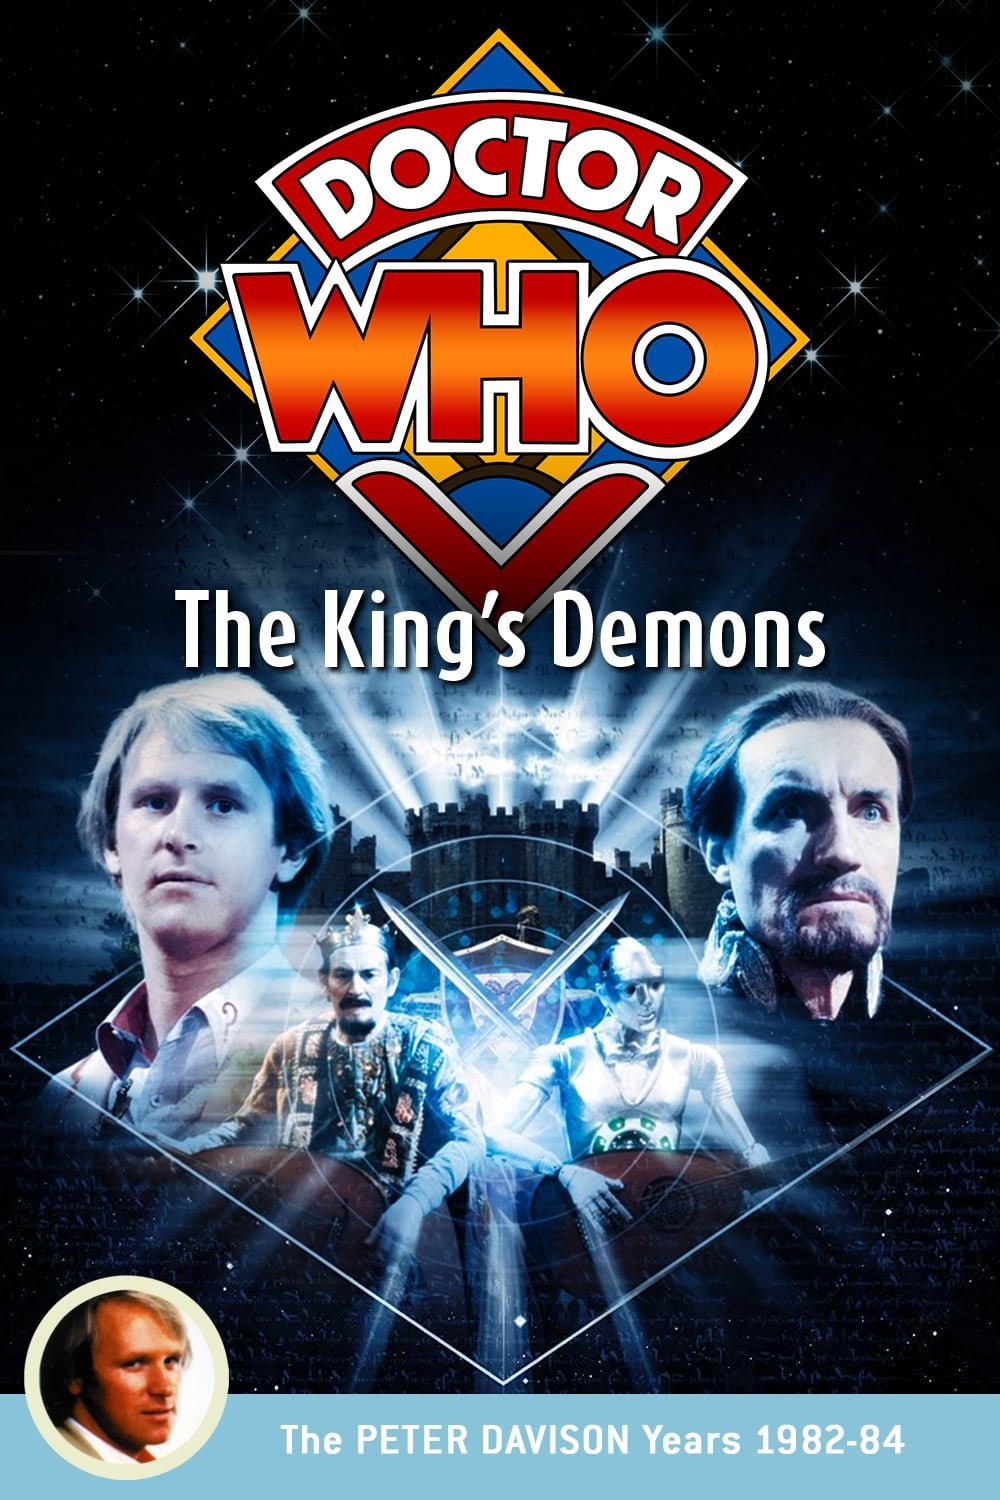 Doctor Who: The King's Demons (1983)